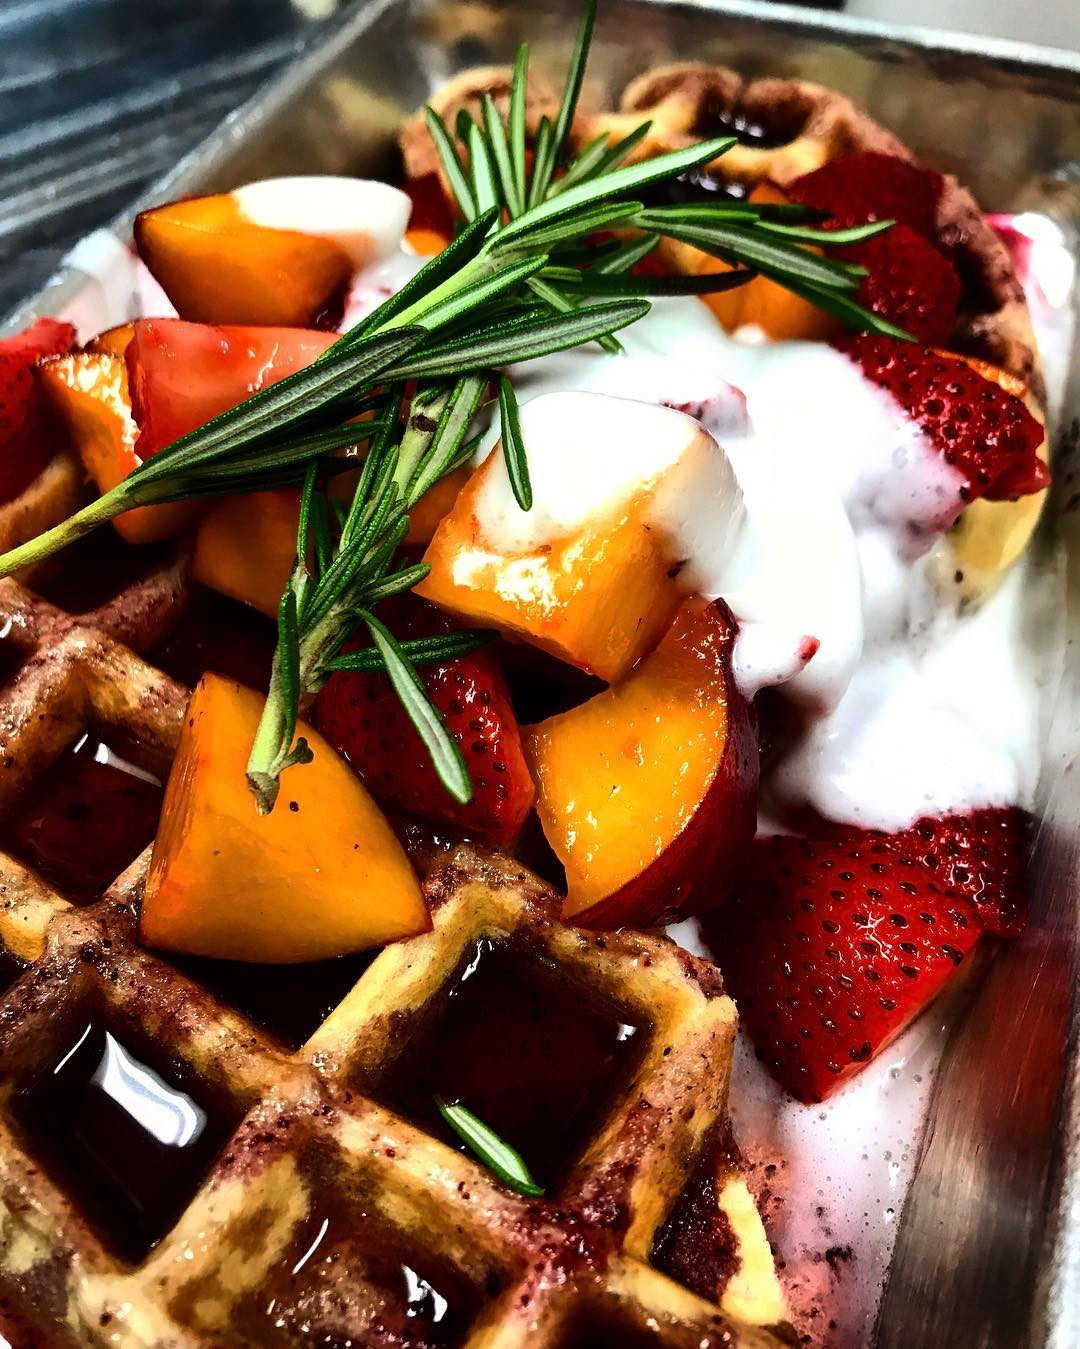 BRUNCH SUNDAY noon3! veganwaffles and all the usual suspects! Itshellip